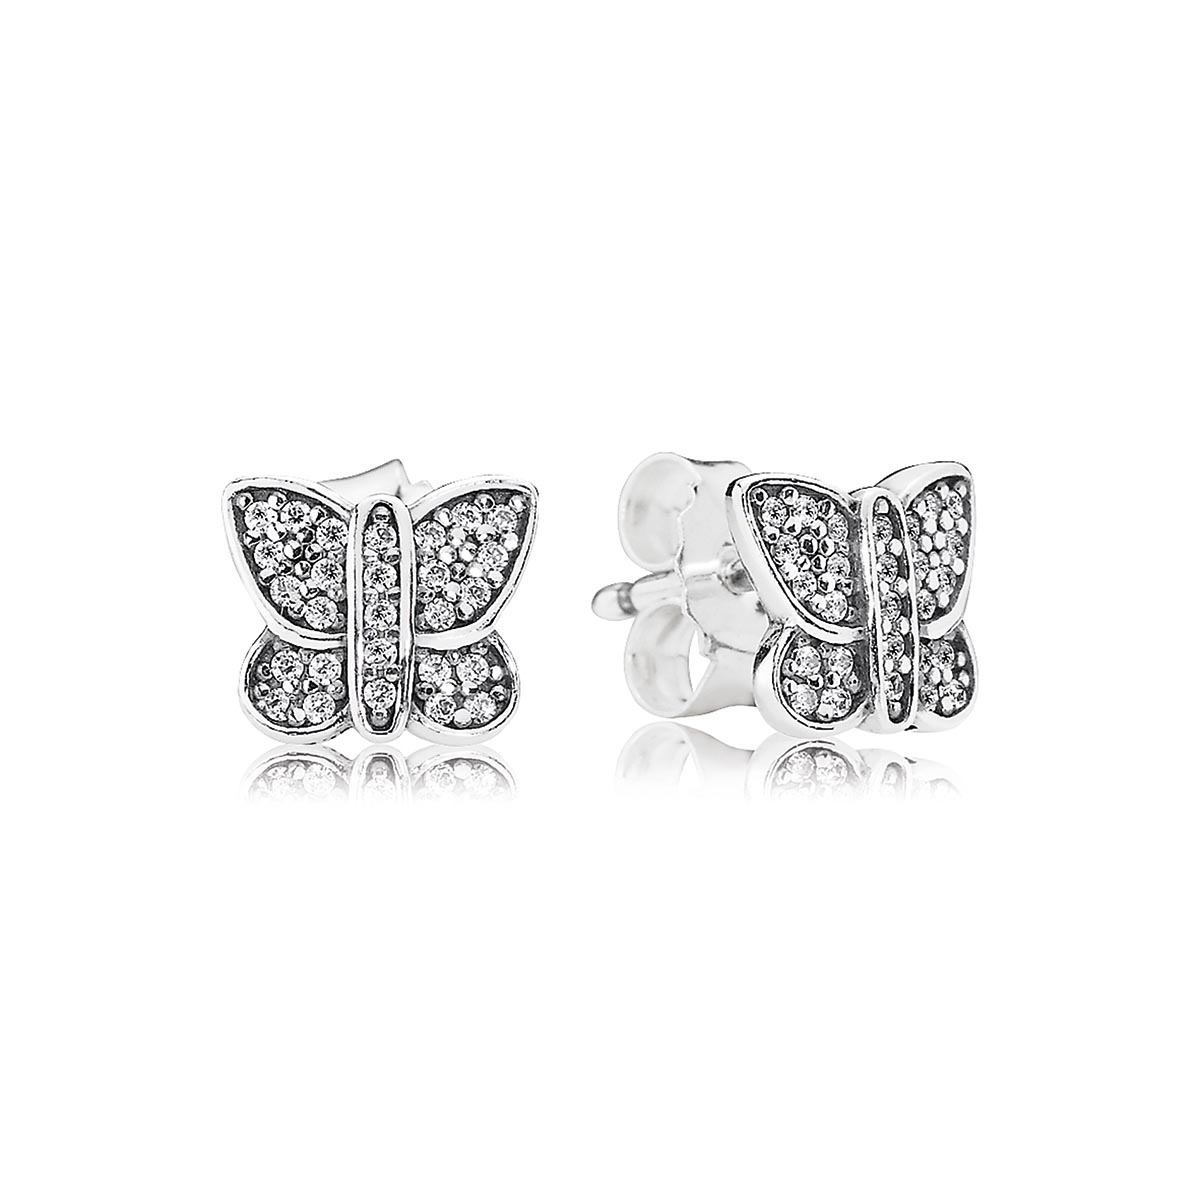 804-383-PANDORA Sparkling Butterfly with Clear CZ Stud Earrings